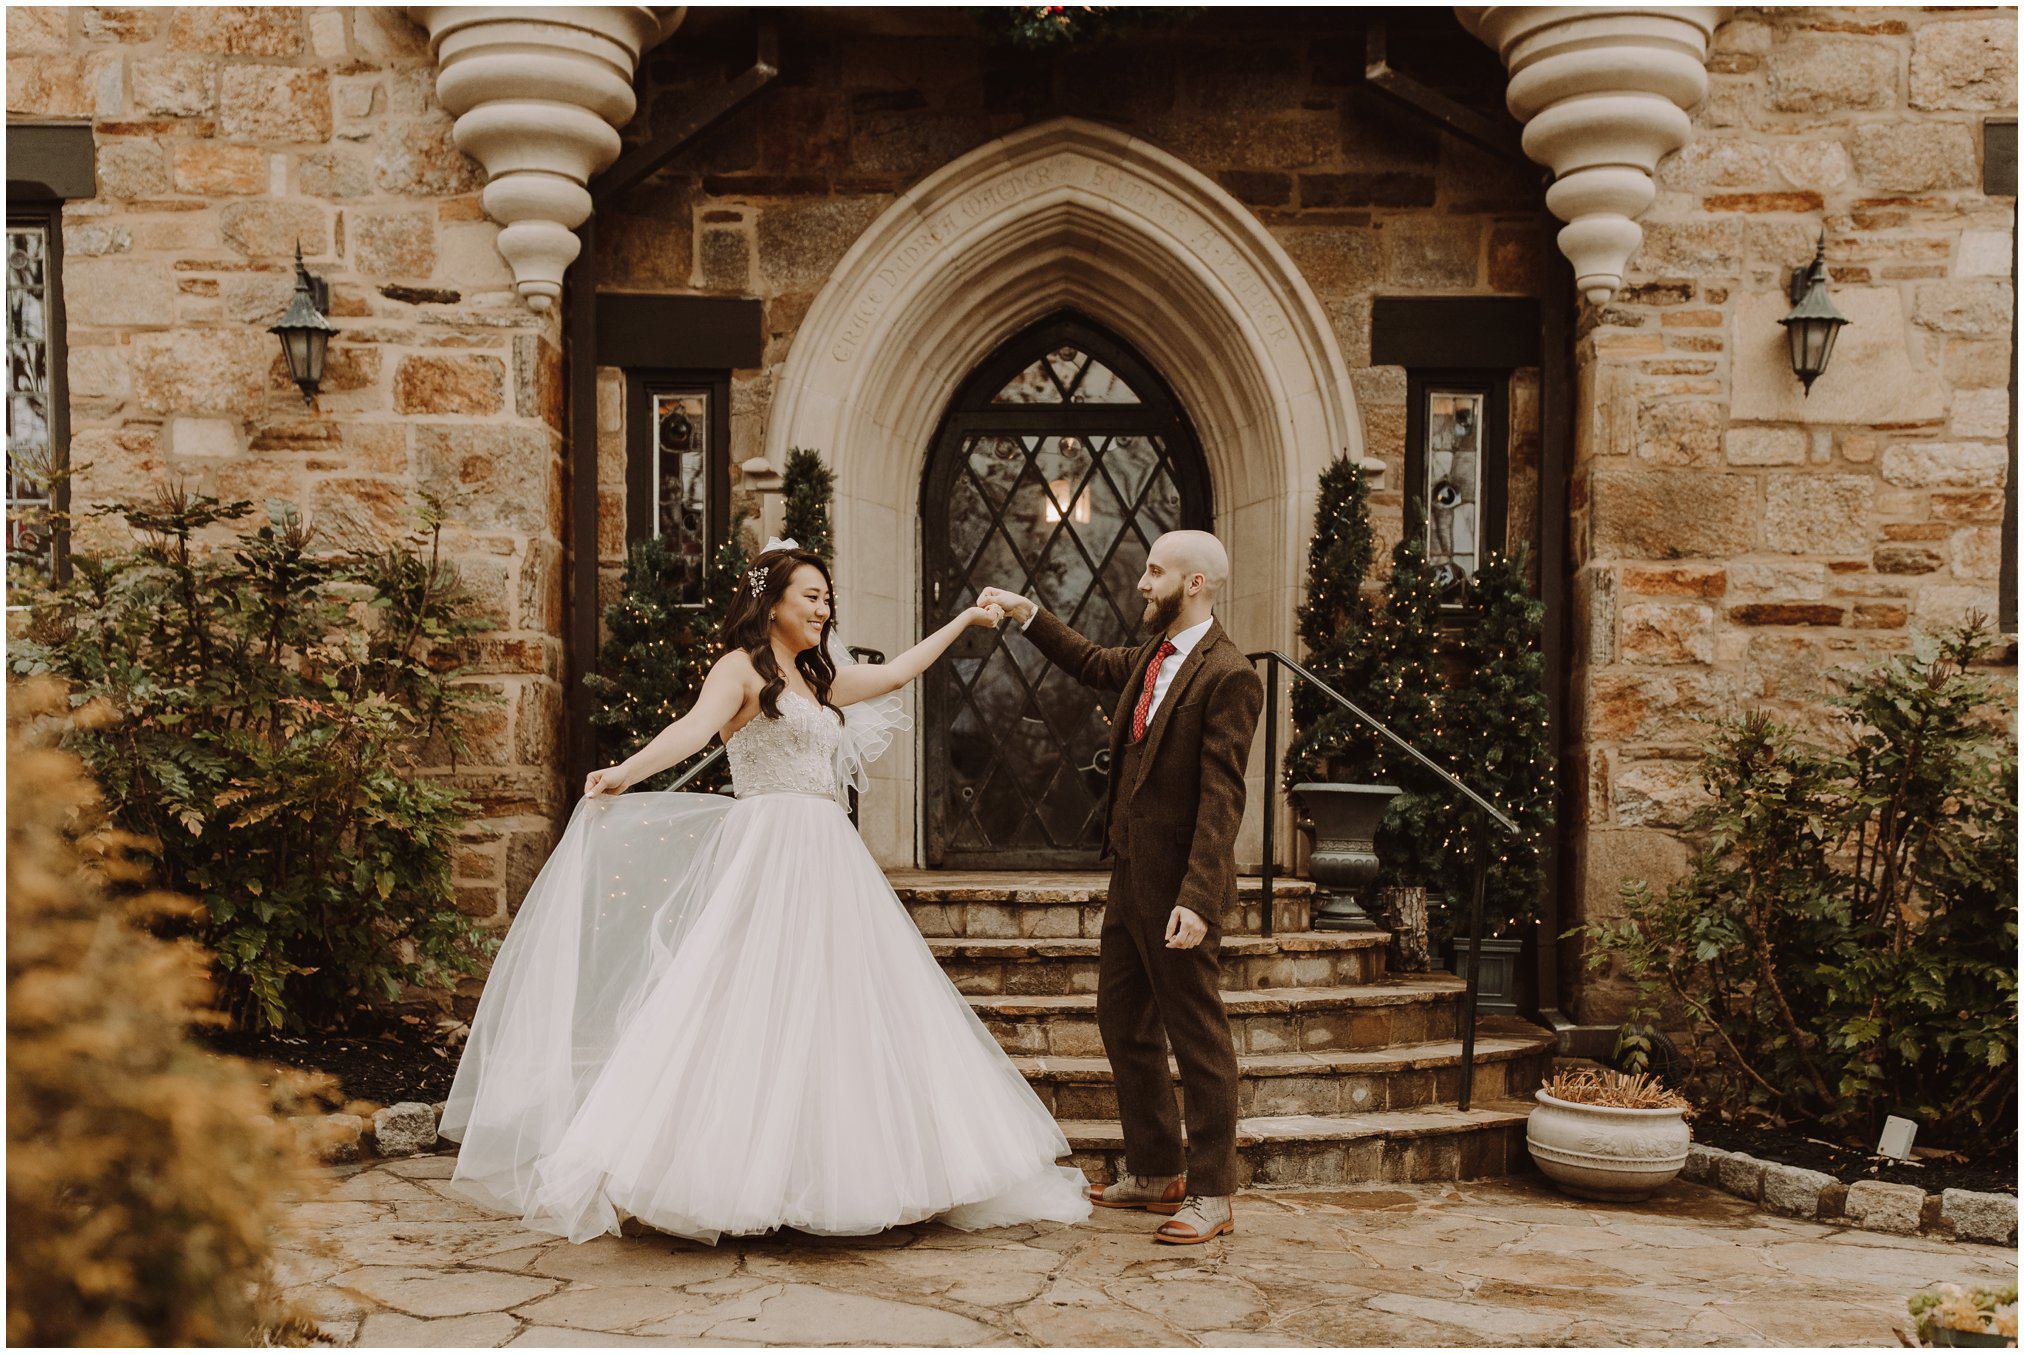 Harry Potter Christmas Wedding at Cloisters Castle